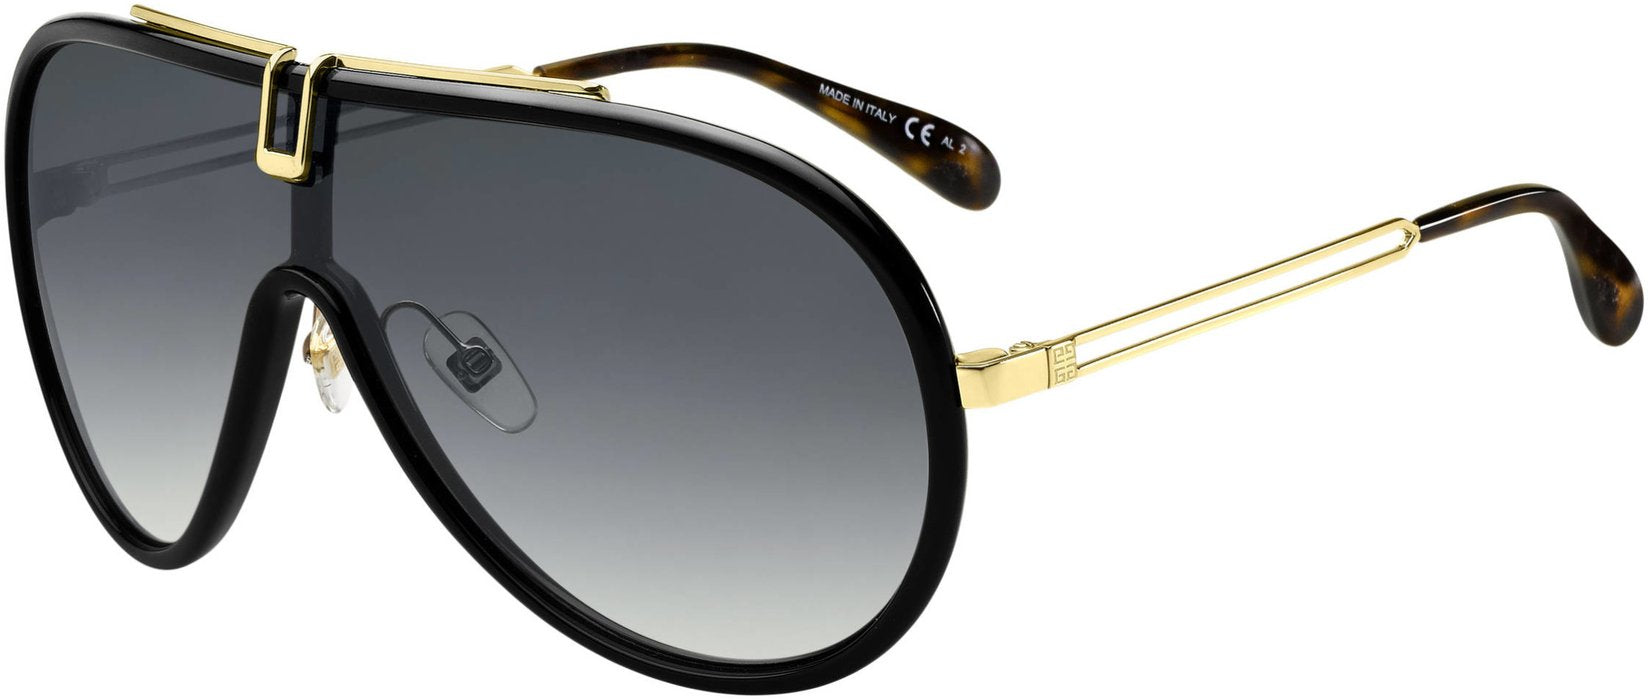 Givenchy GV 7111S 0807 Sunglasses